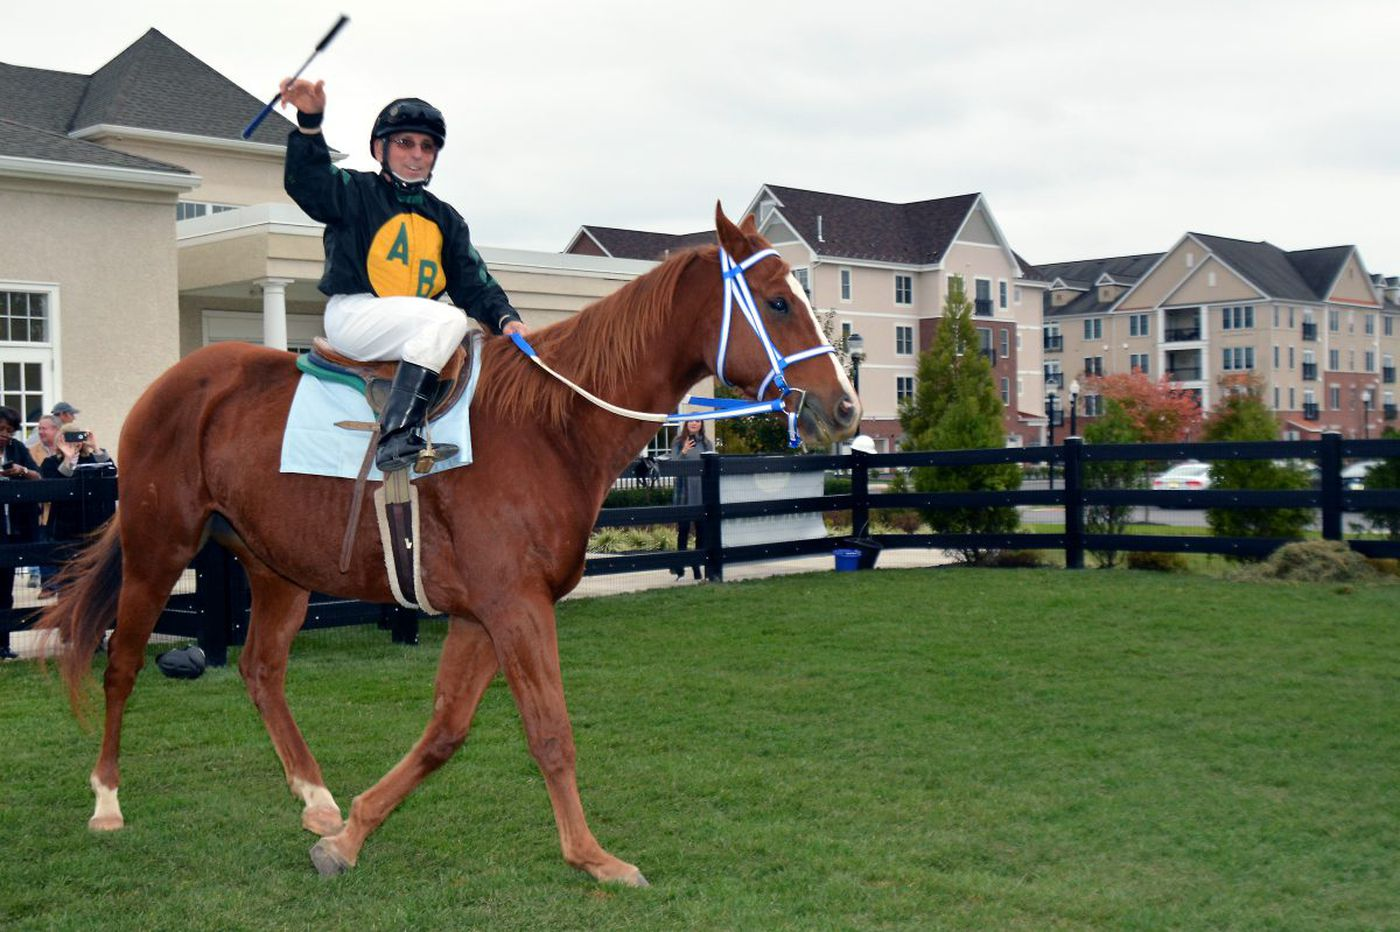 Former Garden State Park jockey aims for two more wins